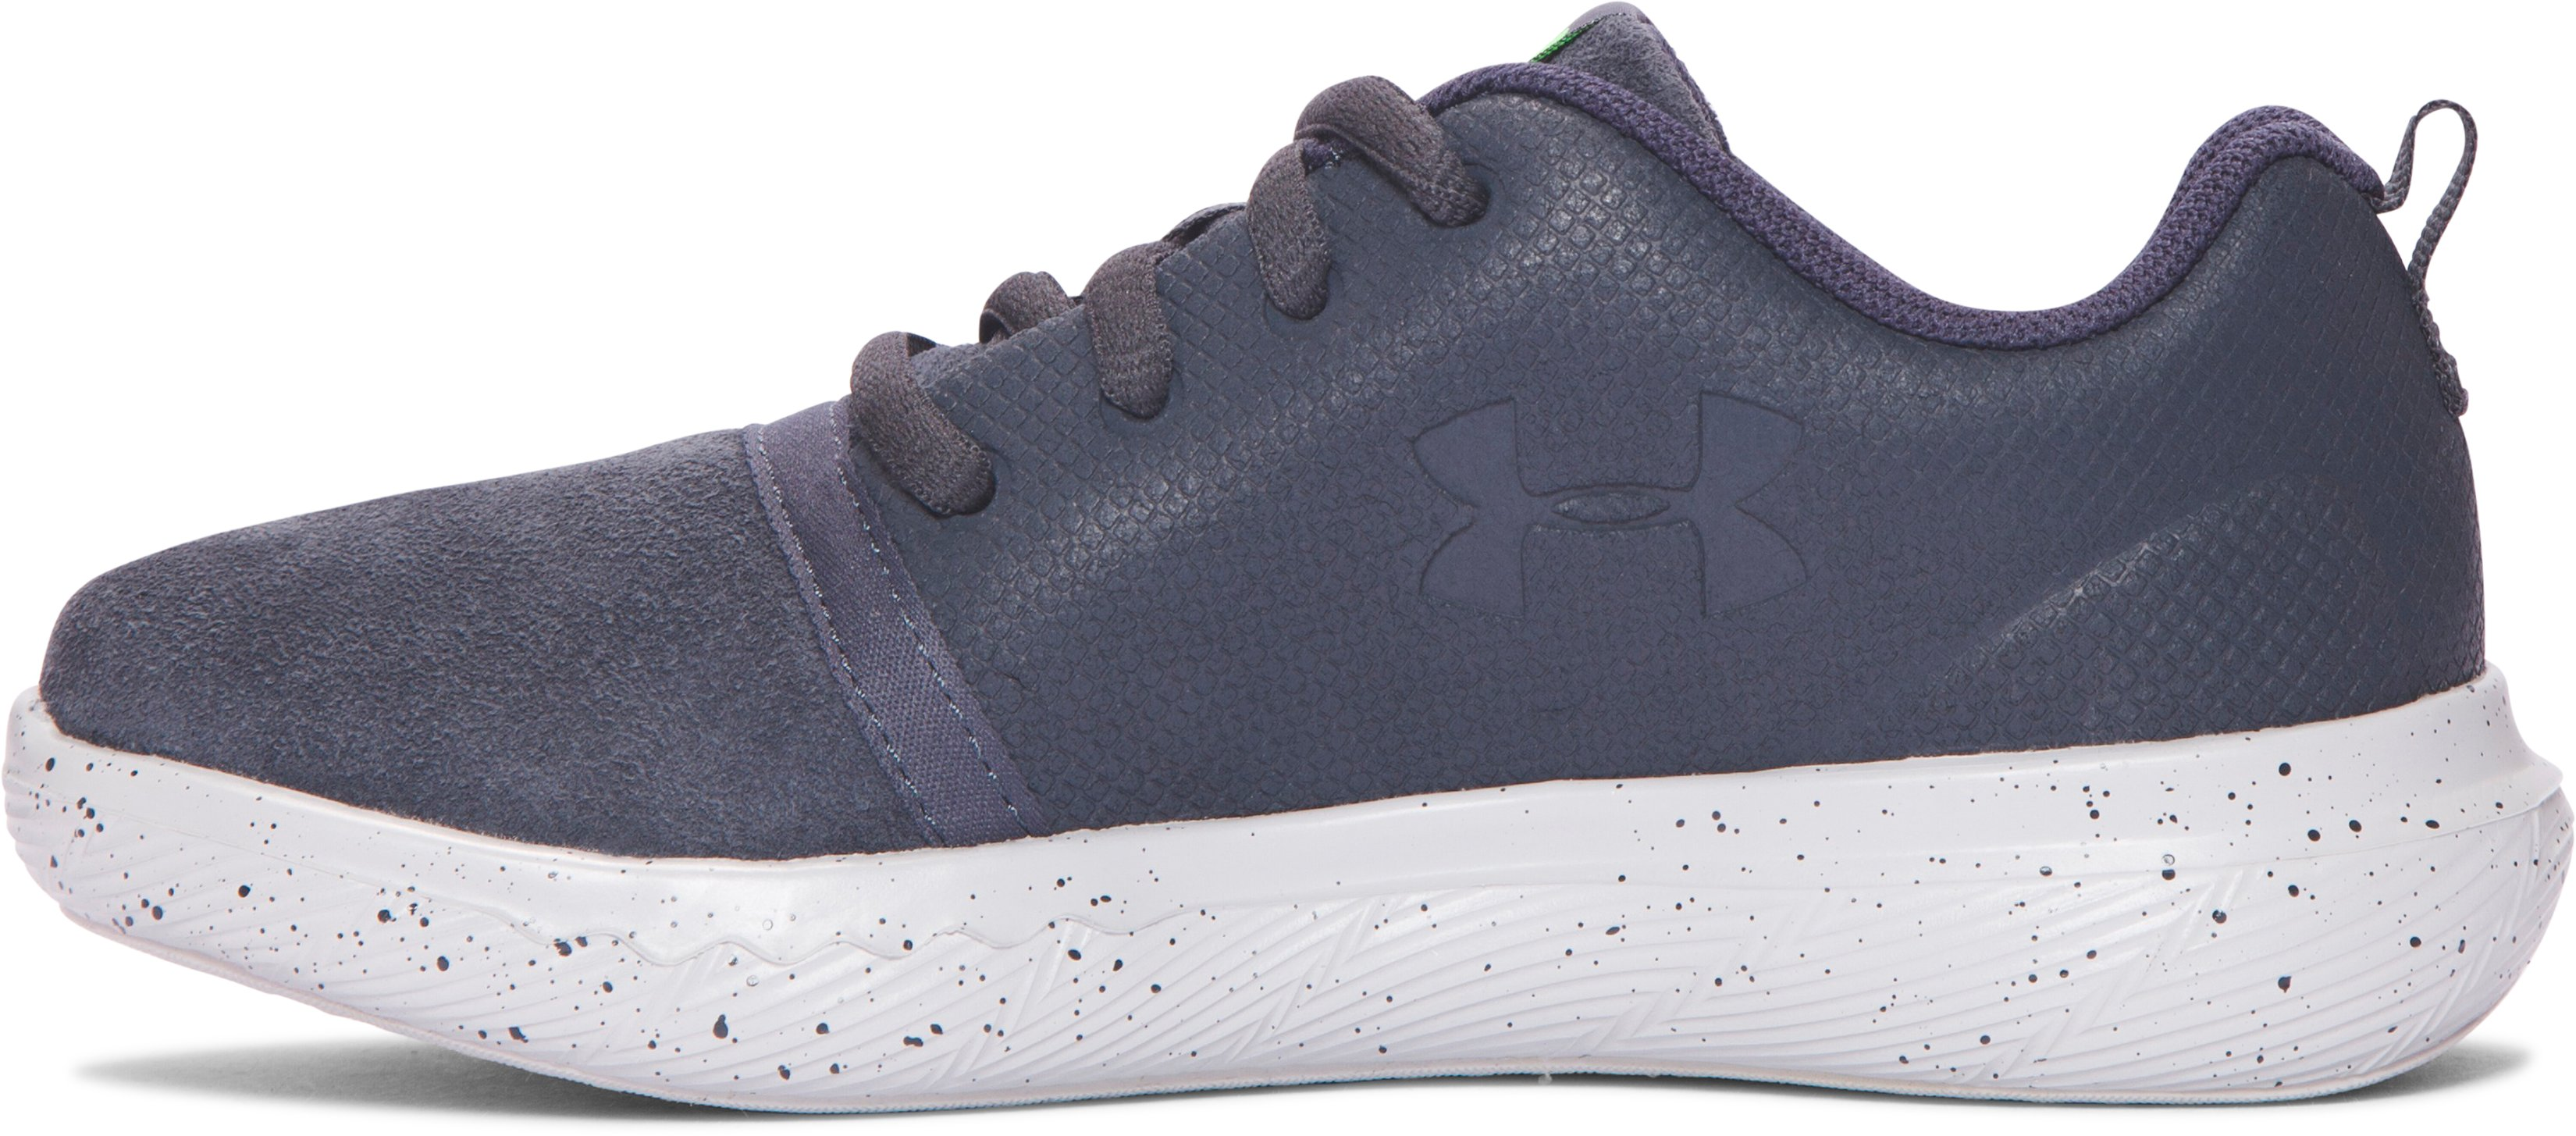 Boys' Pre-School UA Charged 24/7 Low Suede Shoes, STEALTH GRAY